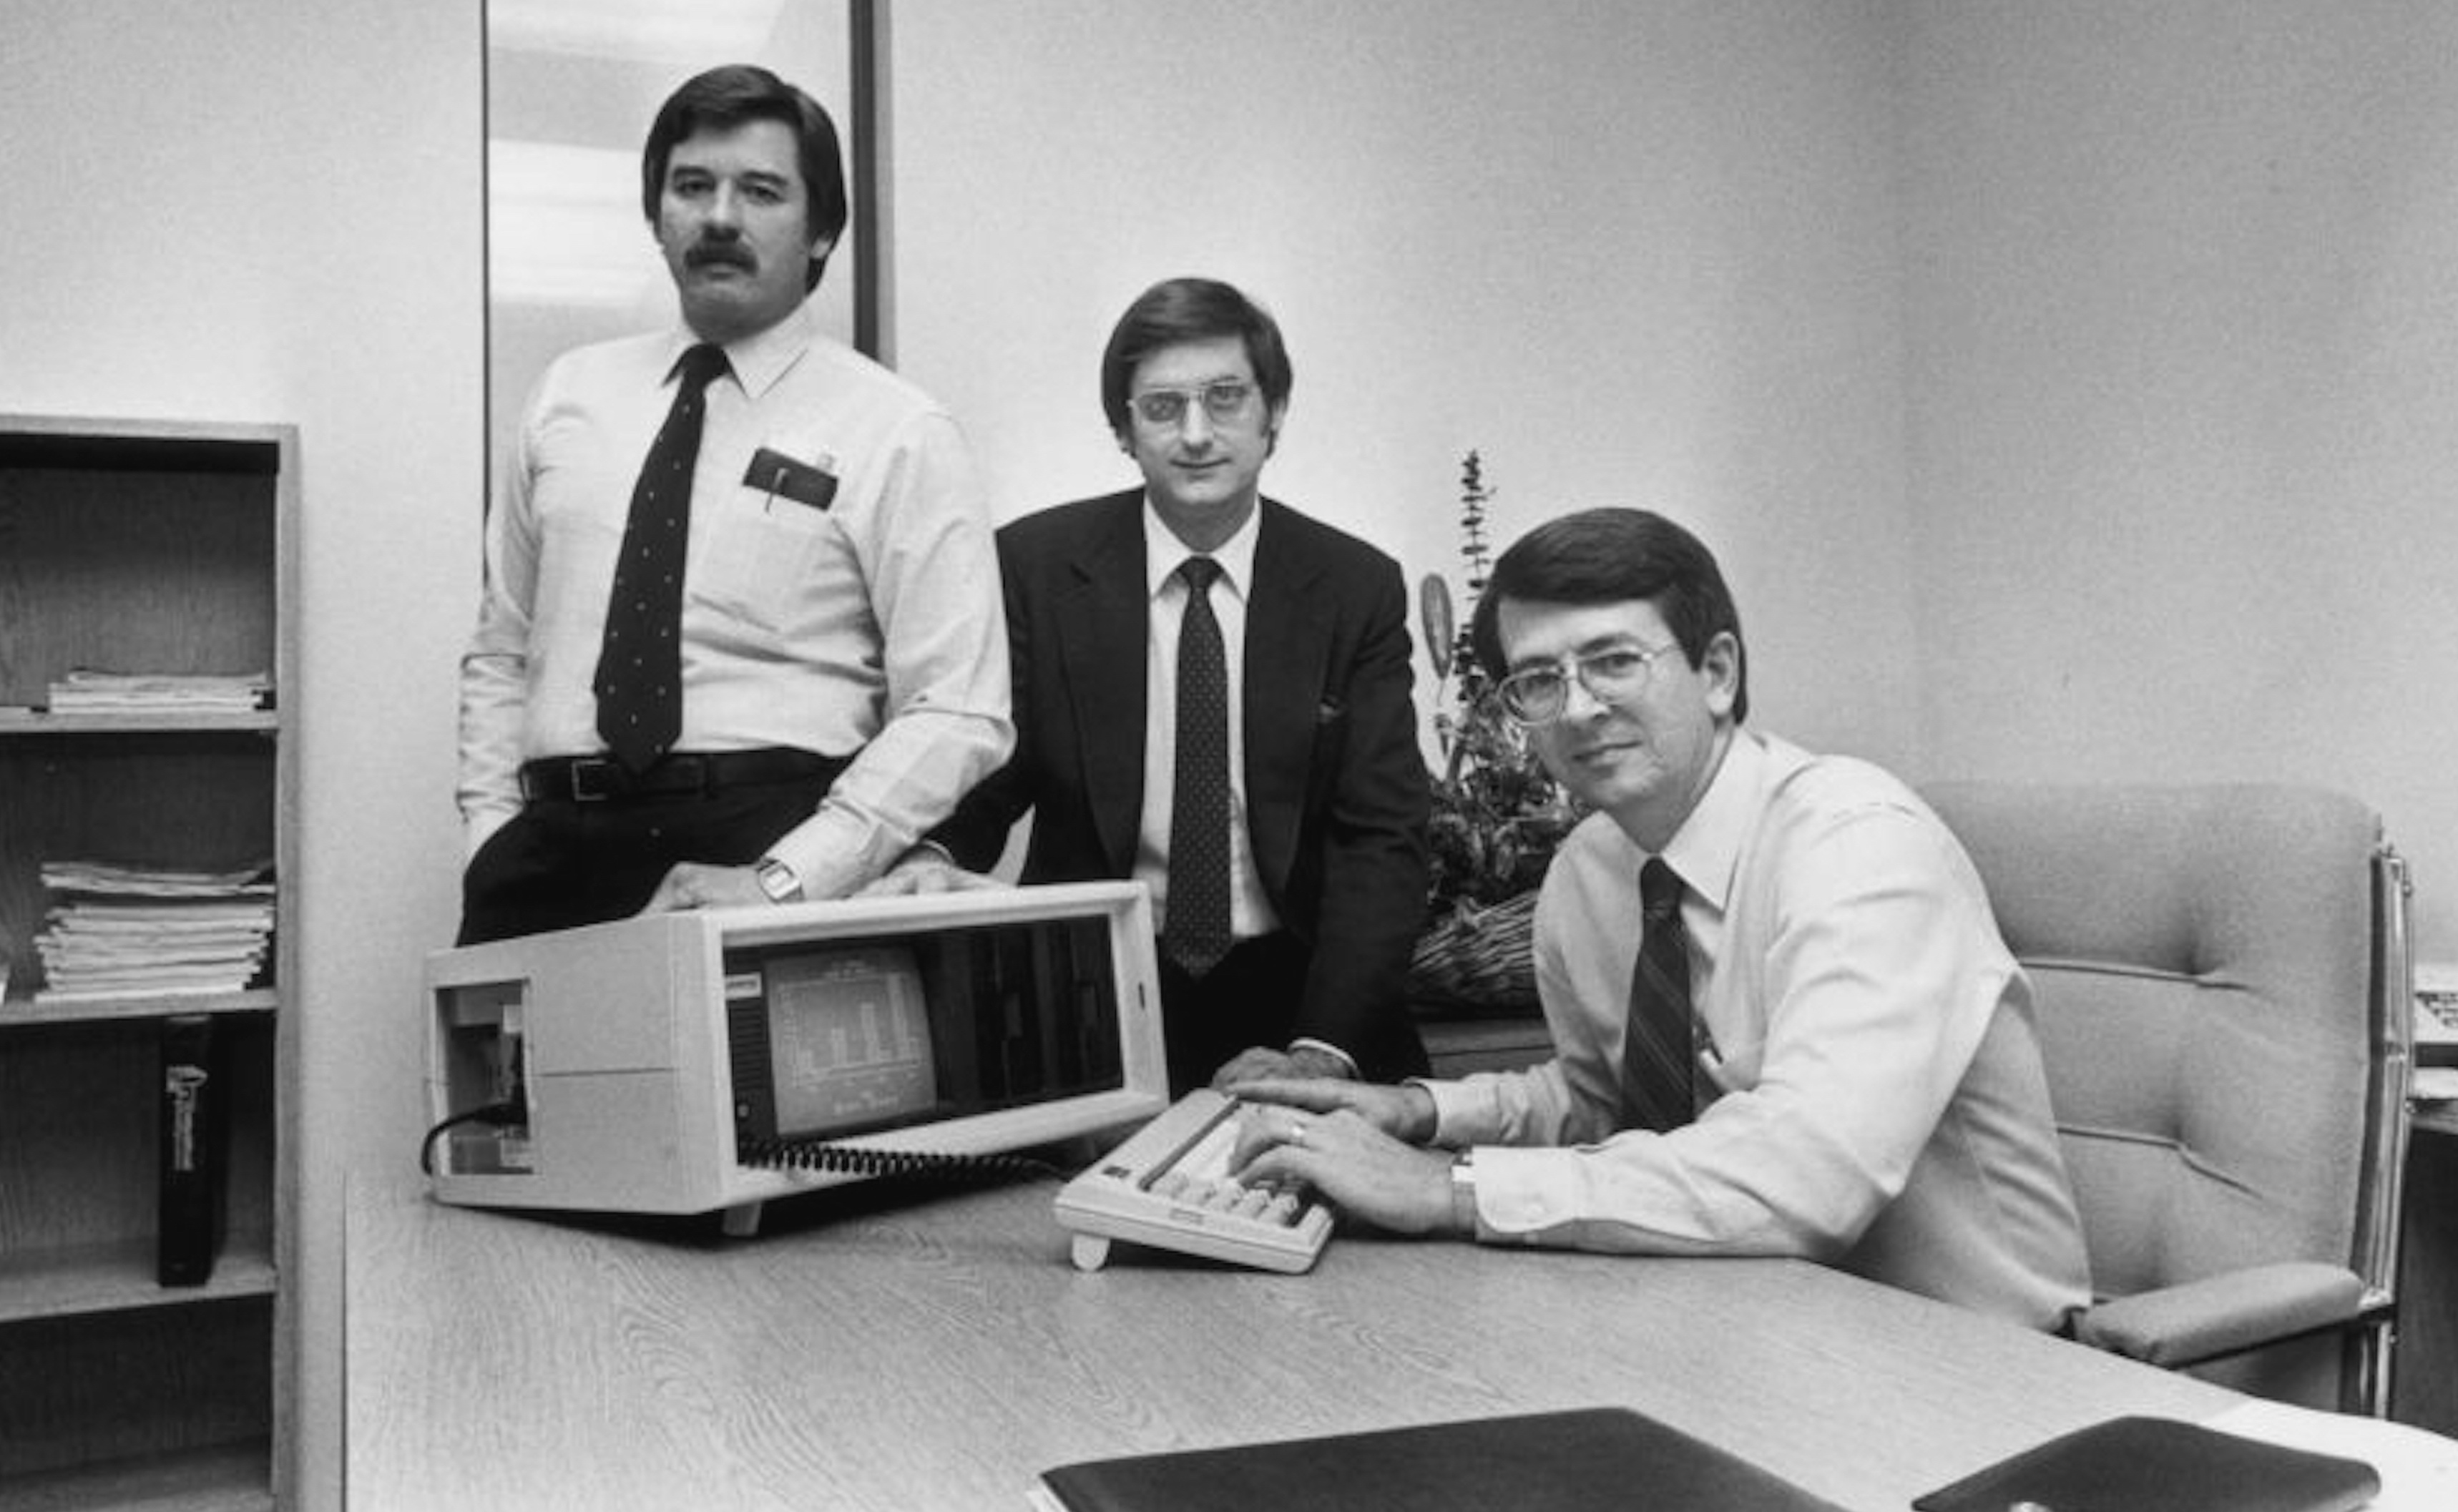 Compaq Computer Co-founders (L-R: Jim Harris, Bill Murto, Rod Canion) with the first Compaq portable computer. Courtesy of FilmRise.